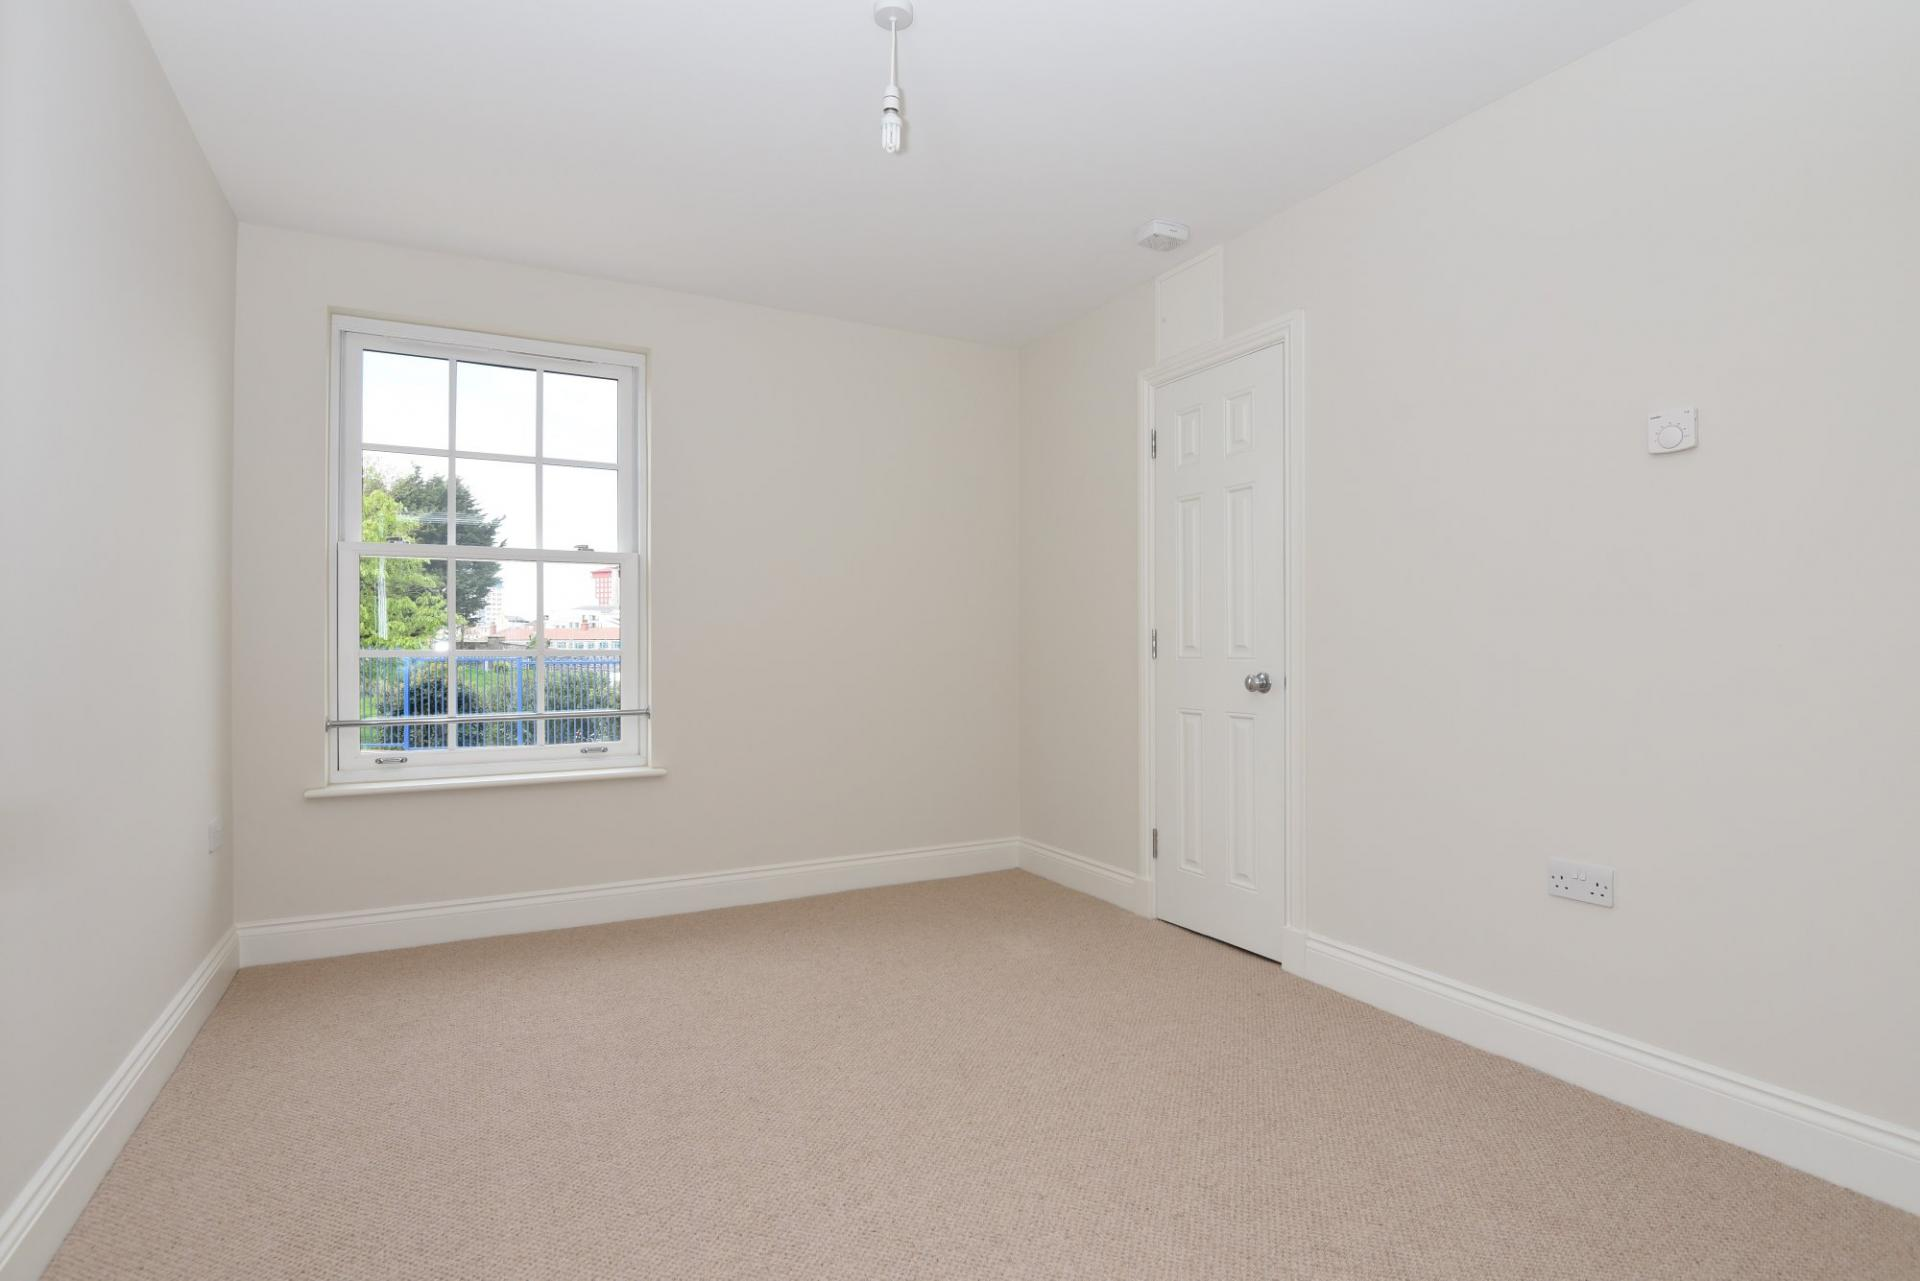 Bedroom Room To Rent In Plymouth Private